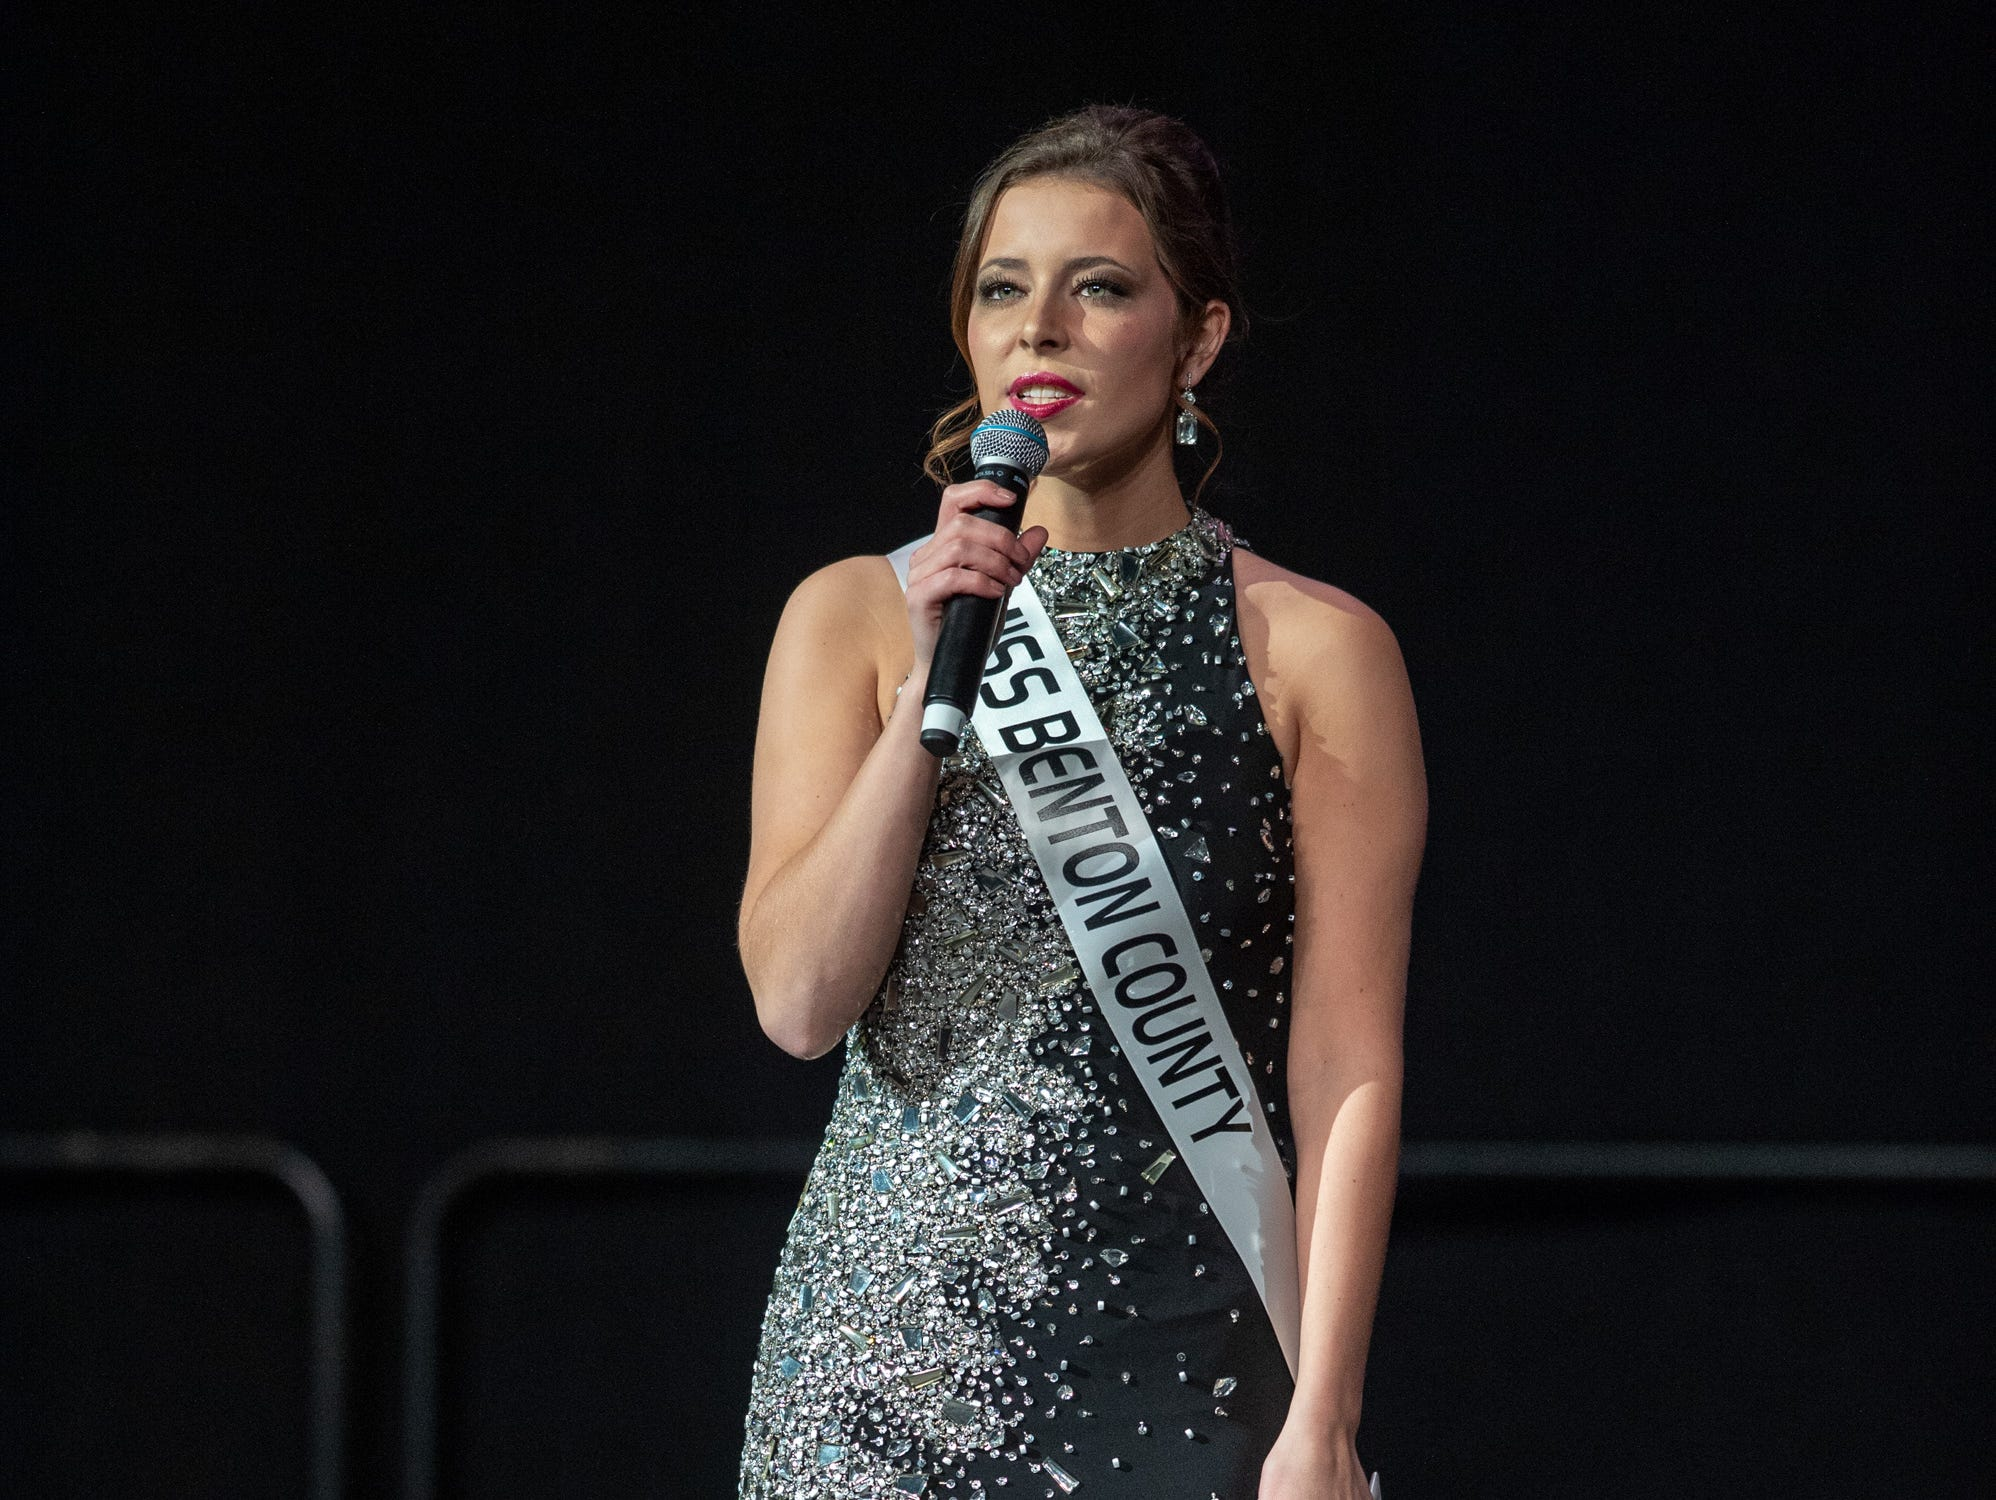 """Miss Benton County, Halle Shoults, was given the word """"hero"""" to use in a spontaneous response during the 61st Indiana State Fair Queen Pageant at the Indiana State Fairgrounds in Indianapolis on Sunday, Jan. 6, 2019."""